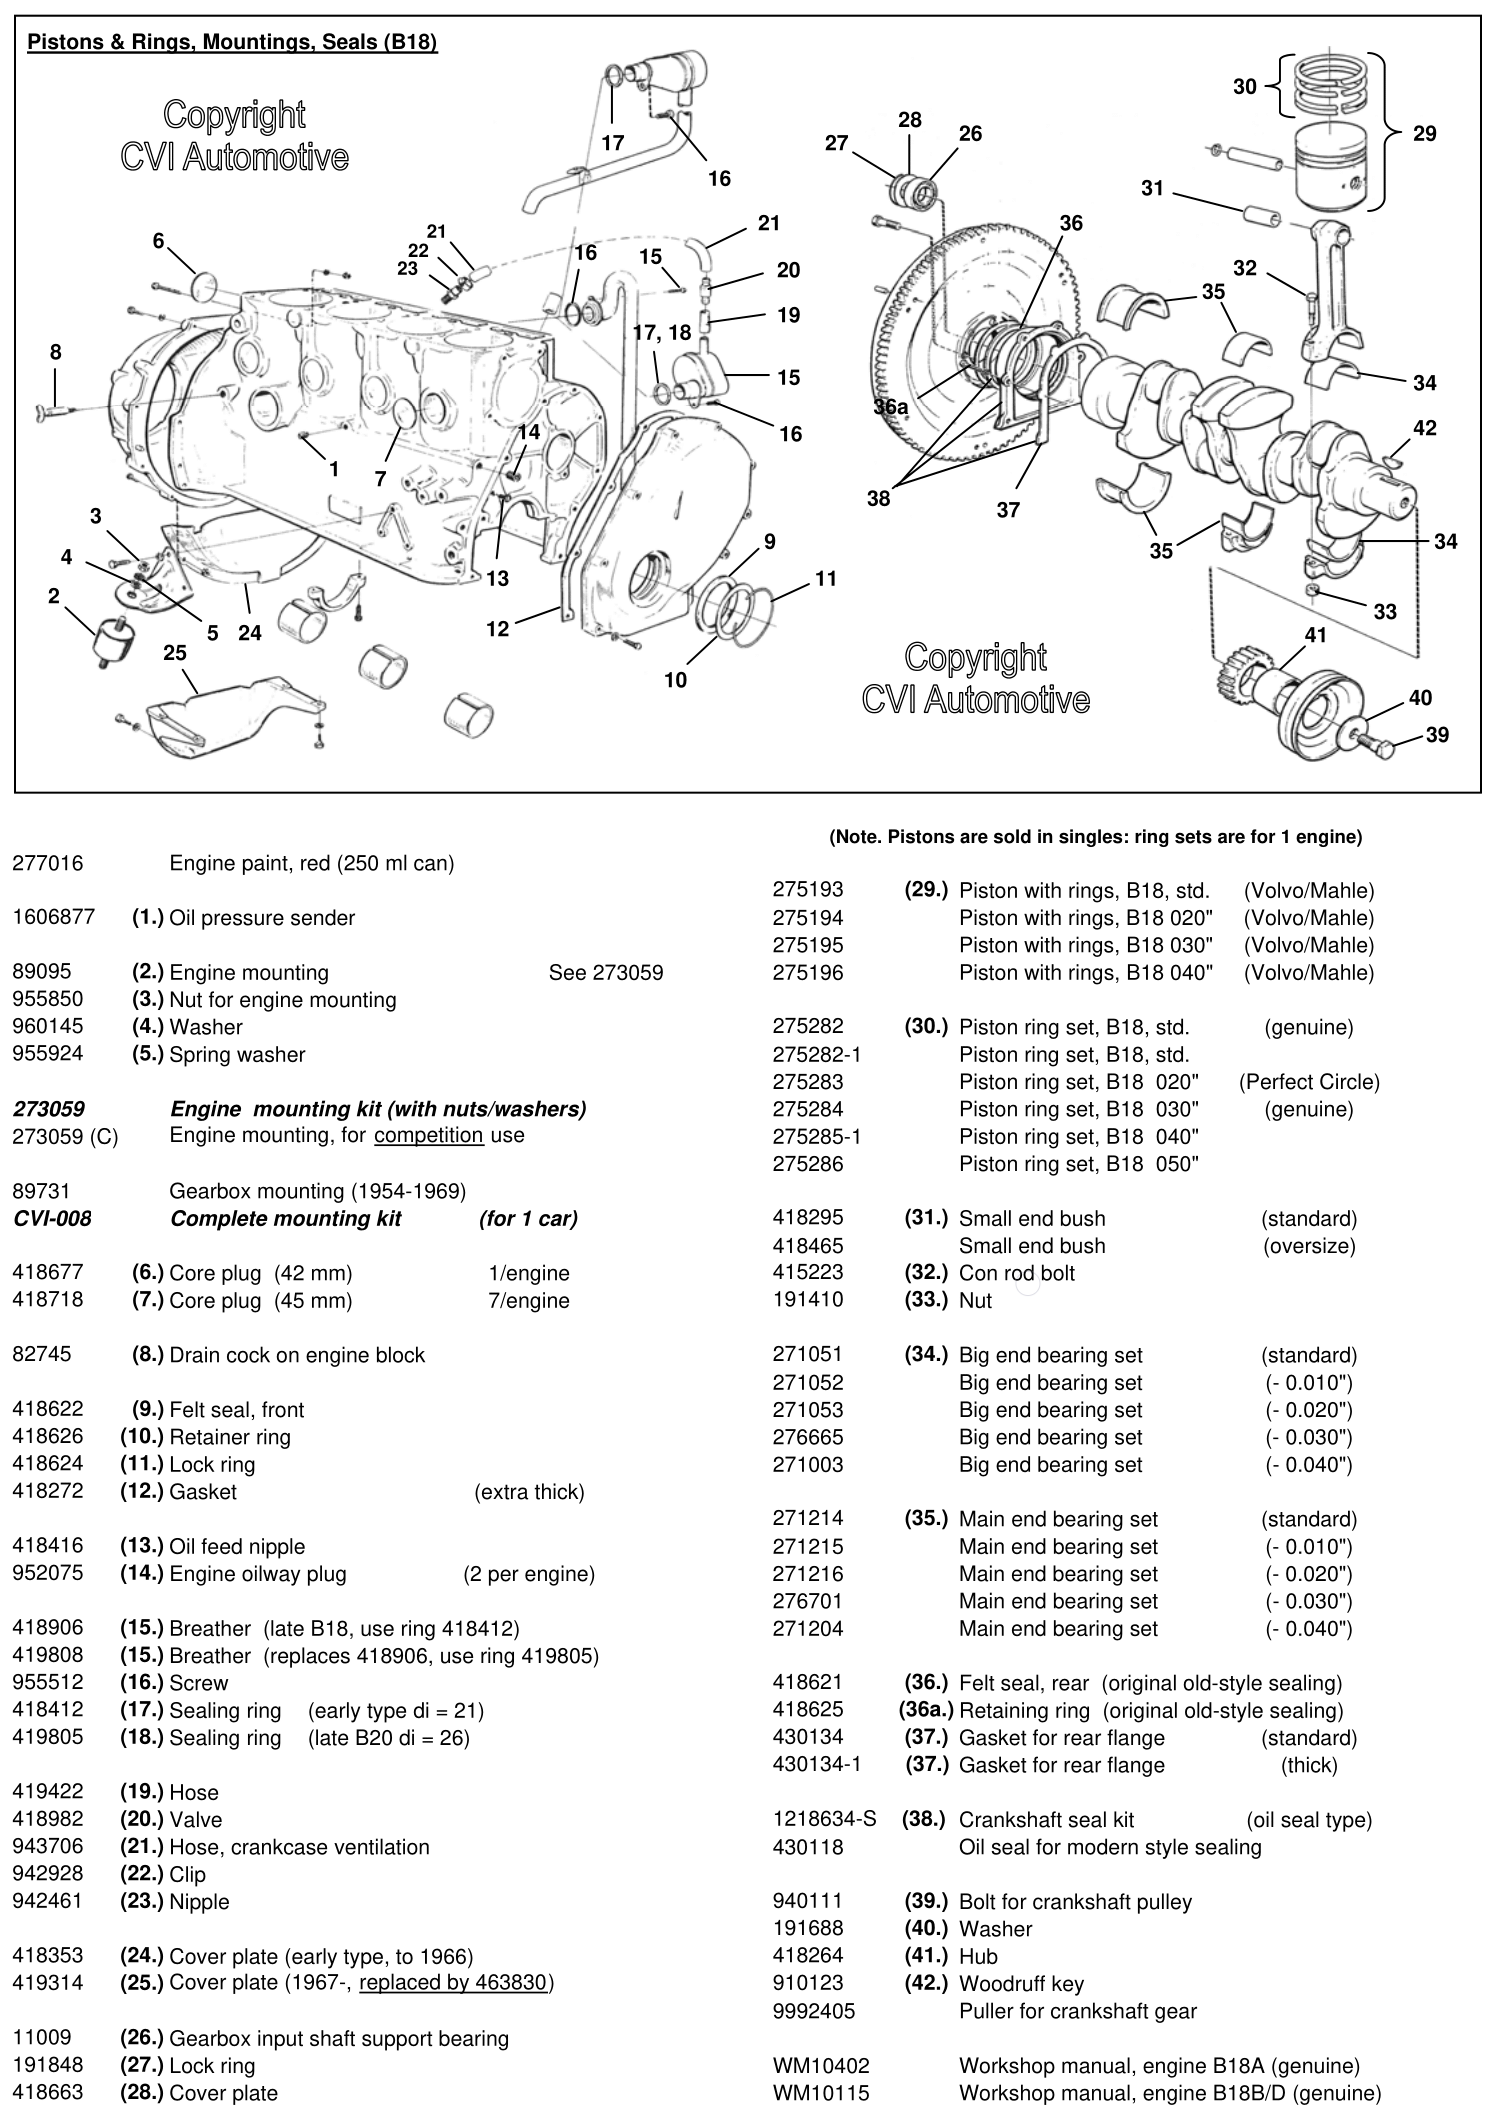 Exploded view - pistons, rings & engine